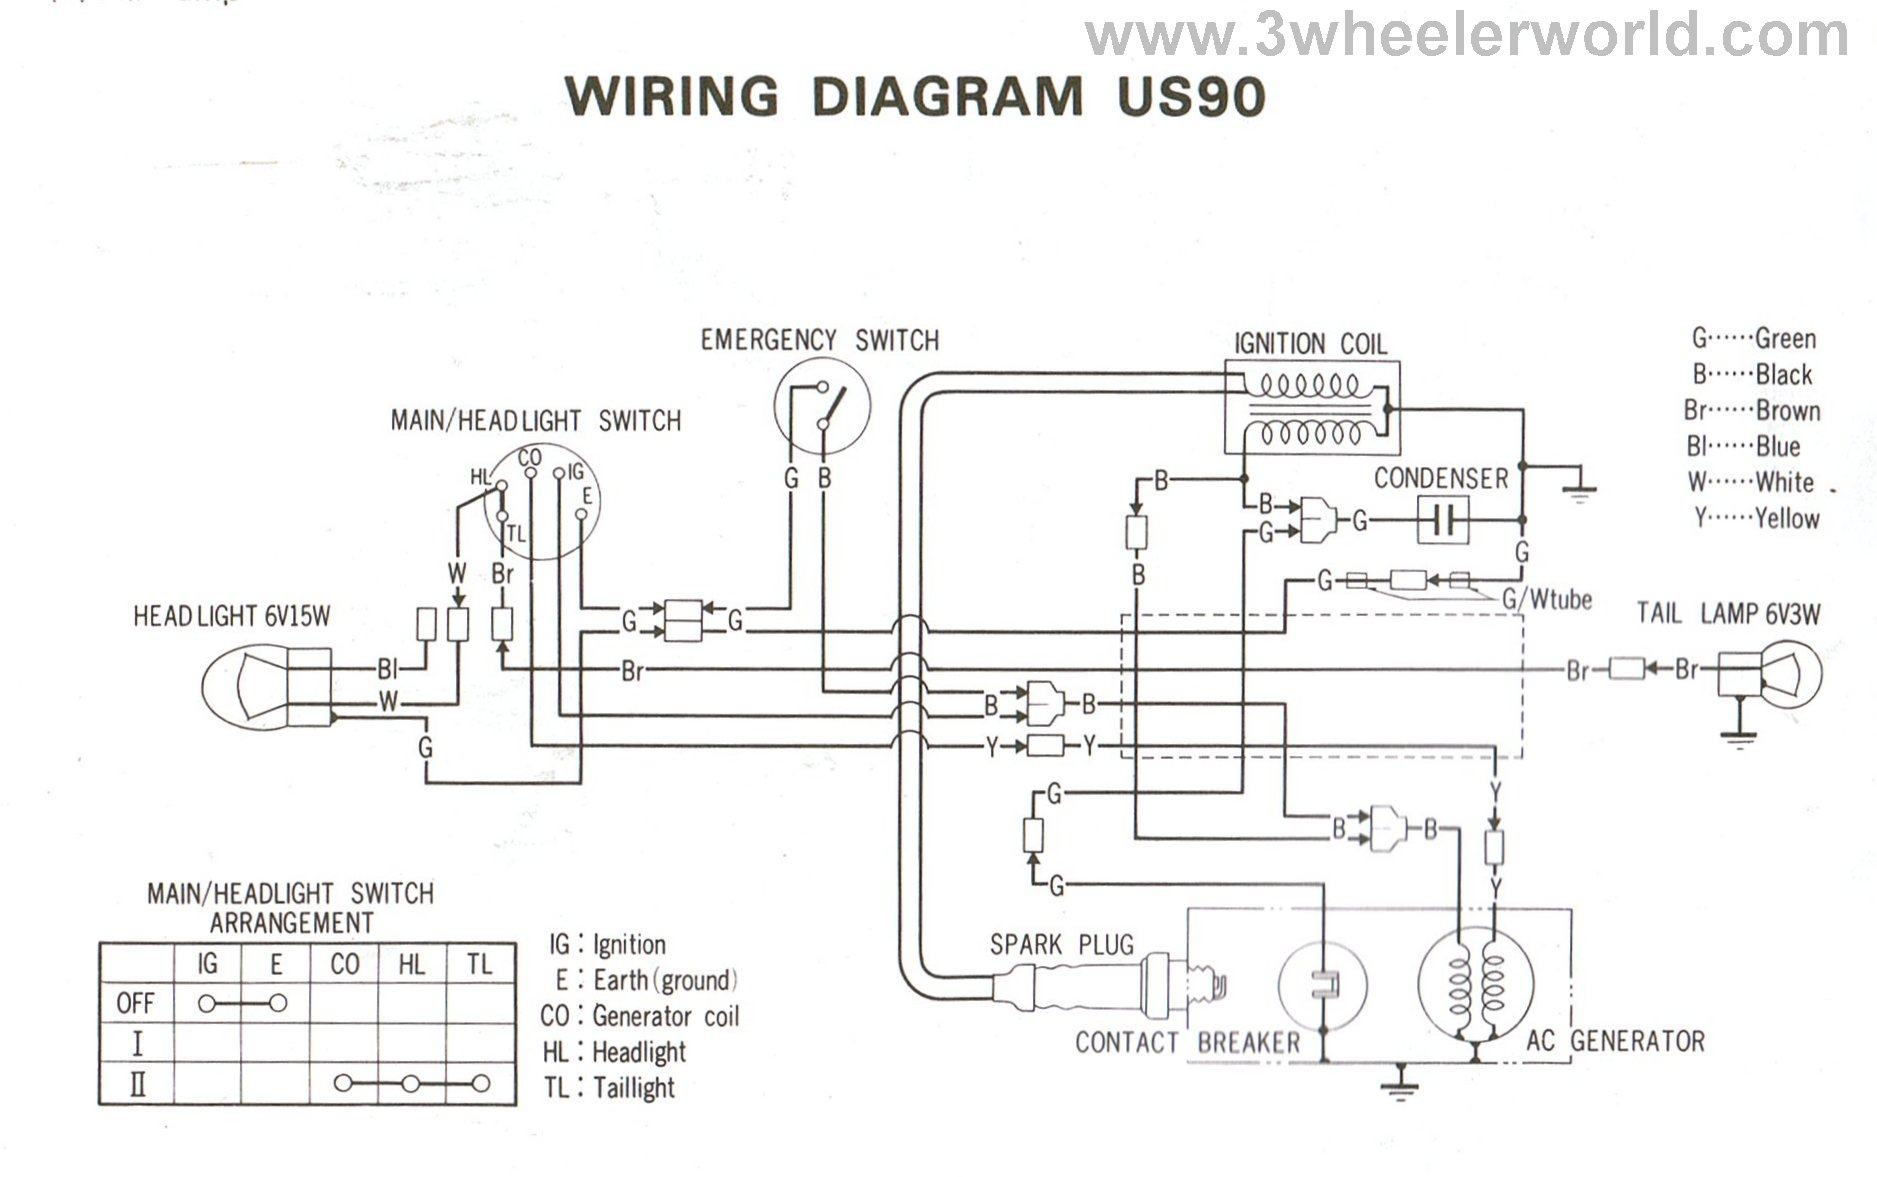 Wiring Diagram For Honda 350x Reinvent Your Cb350 3 Wheeler World Tech Help Diagrams Rh 3wheelerworld Com Schematic Cl350